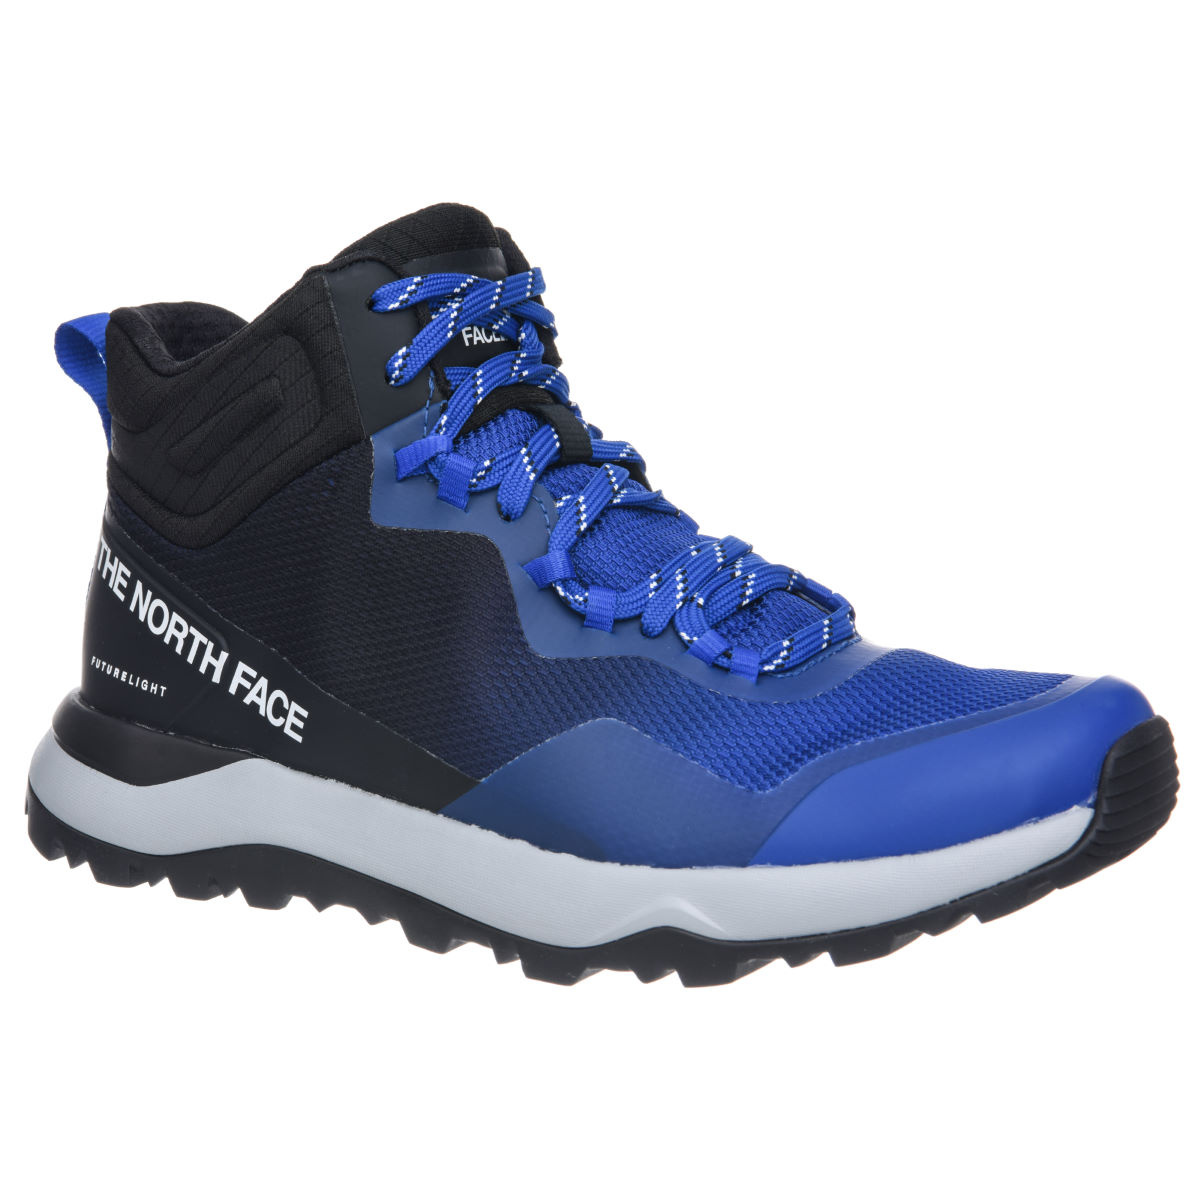 The North Face The North Face Activist Mid FutureLight™ Shoes   Shoes